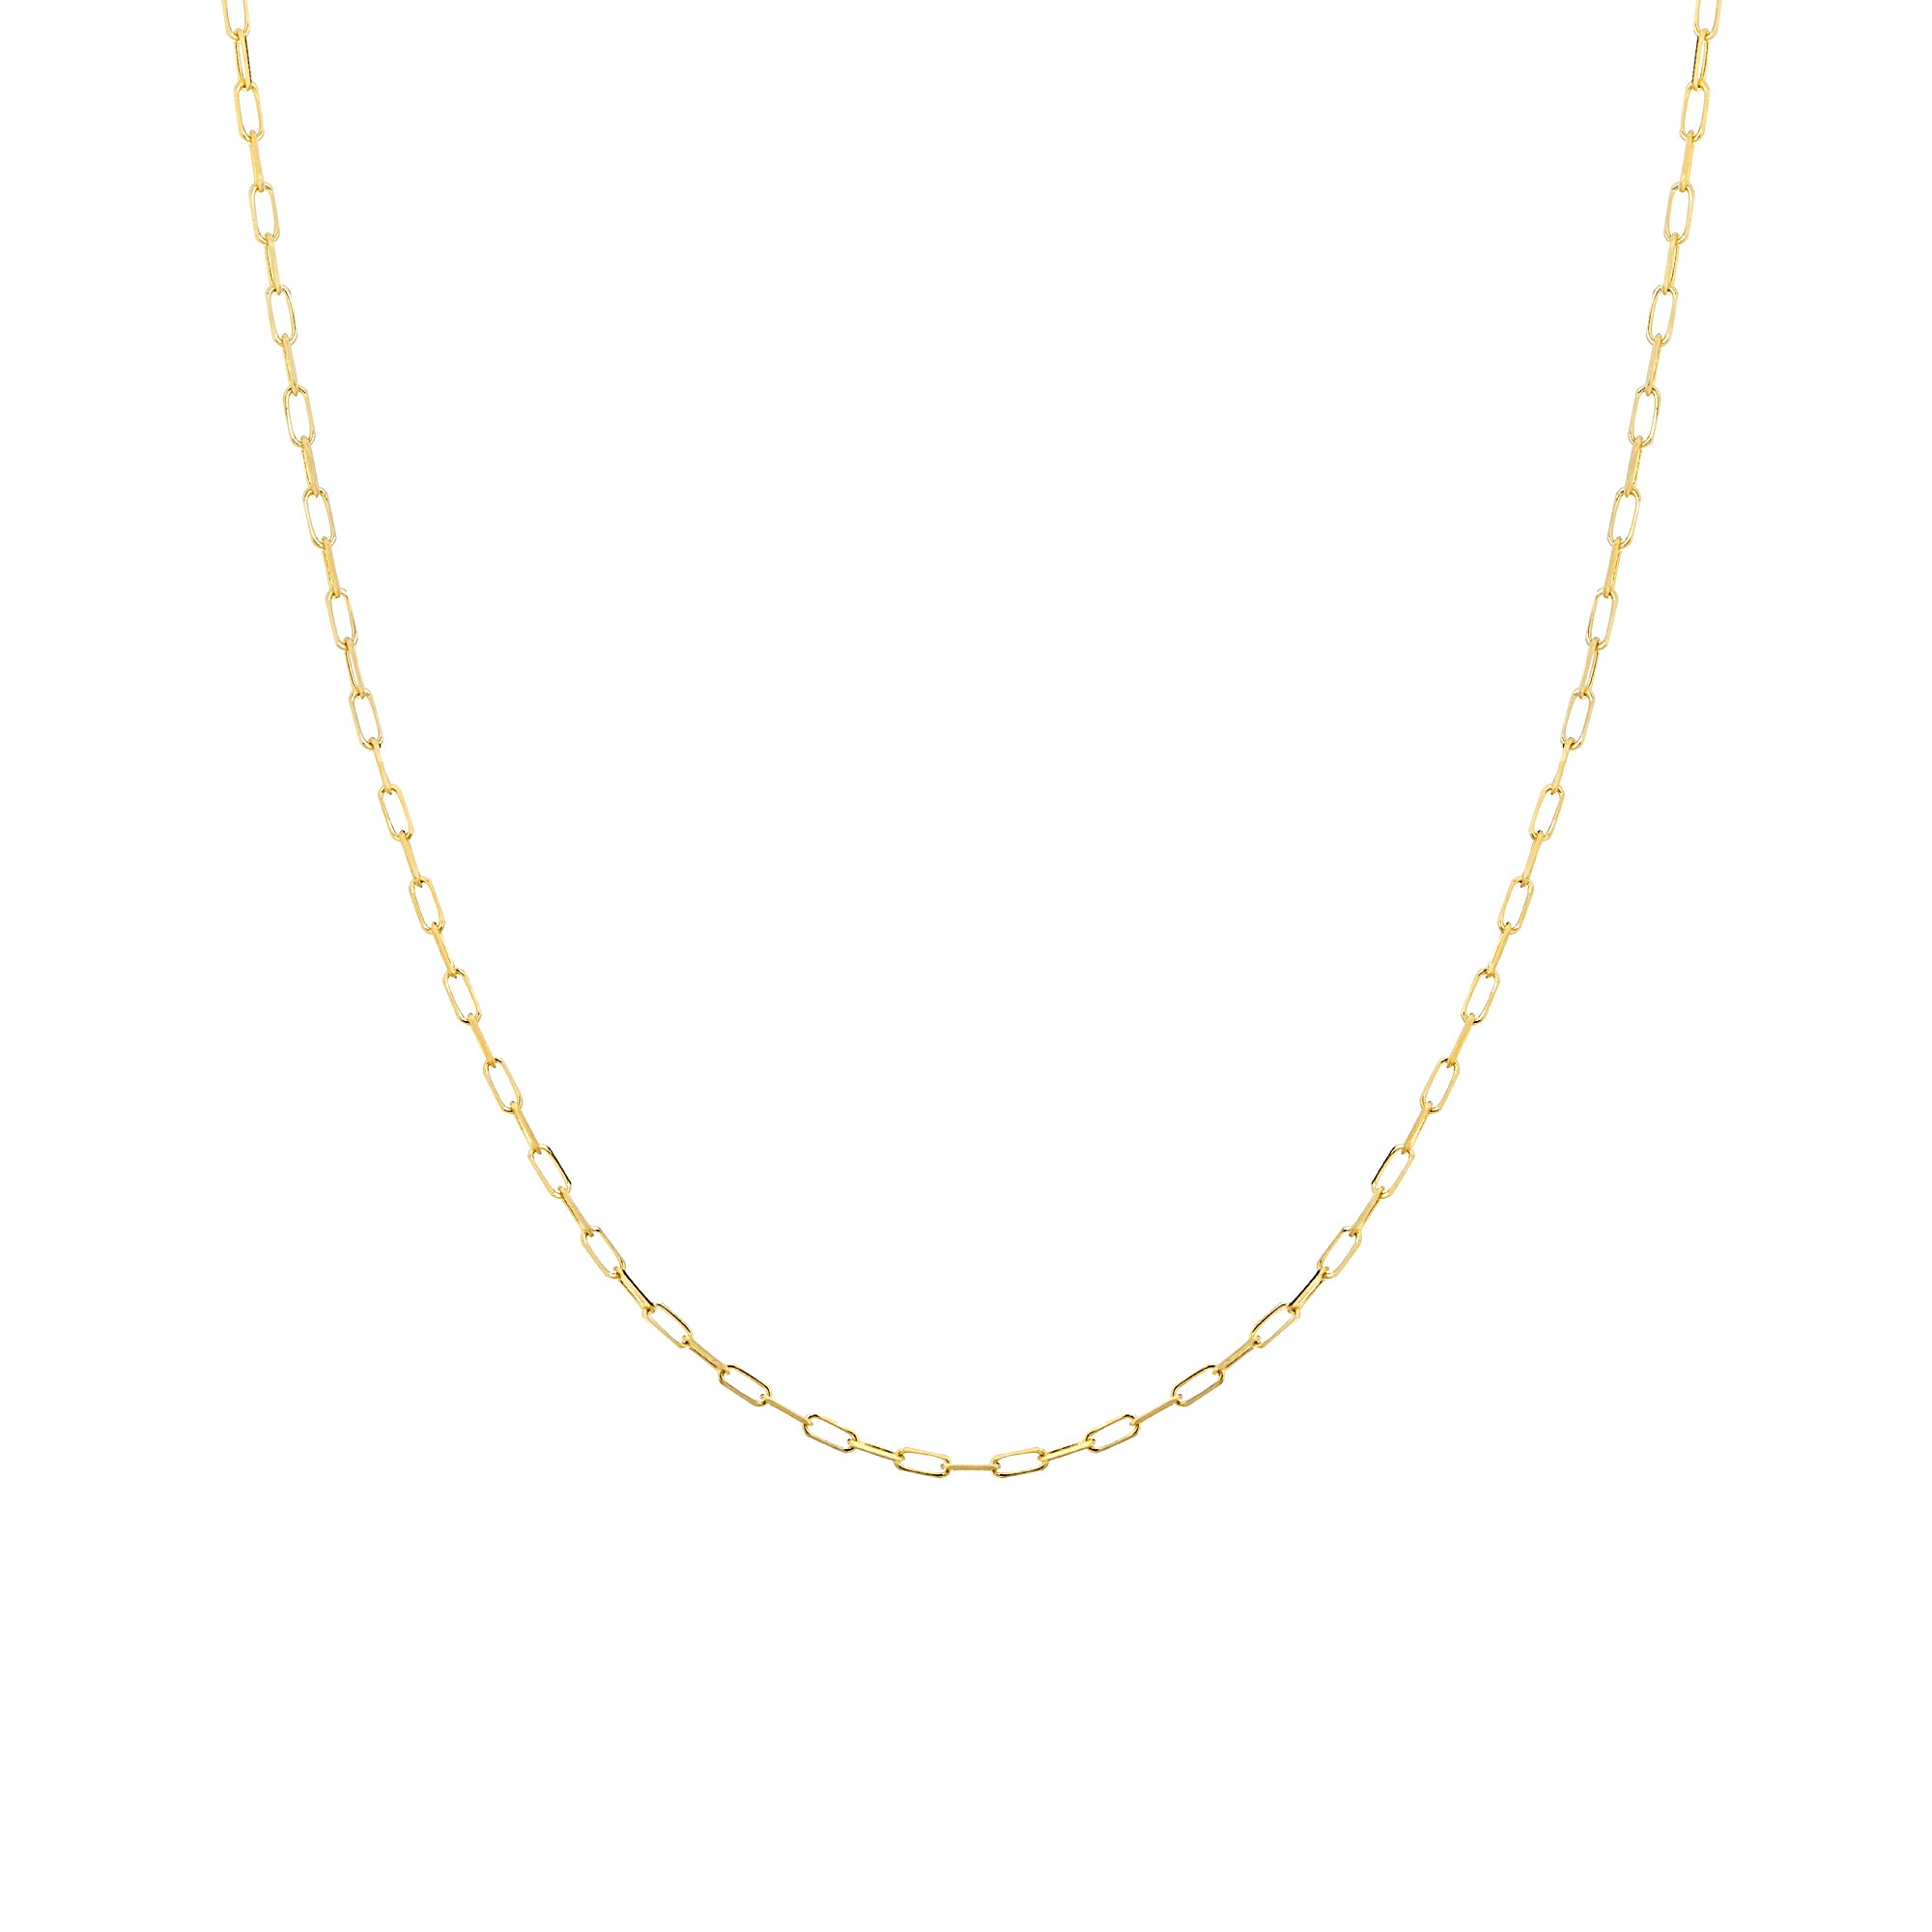 online chains regal design pin gold fox necklace plain chain jewels tail